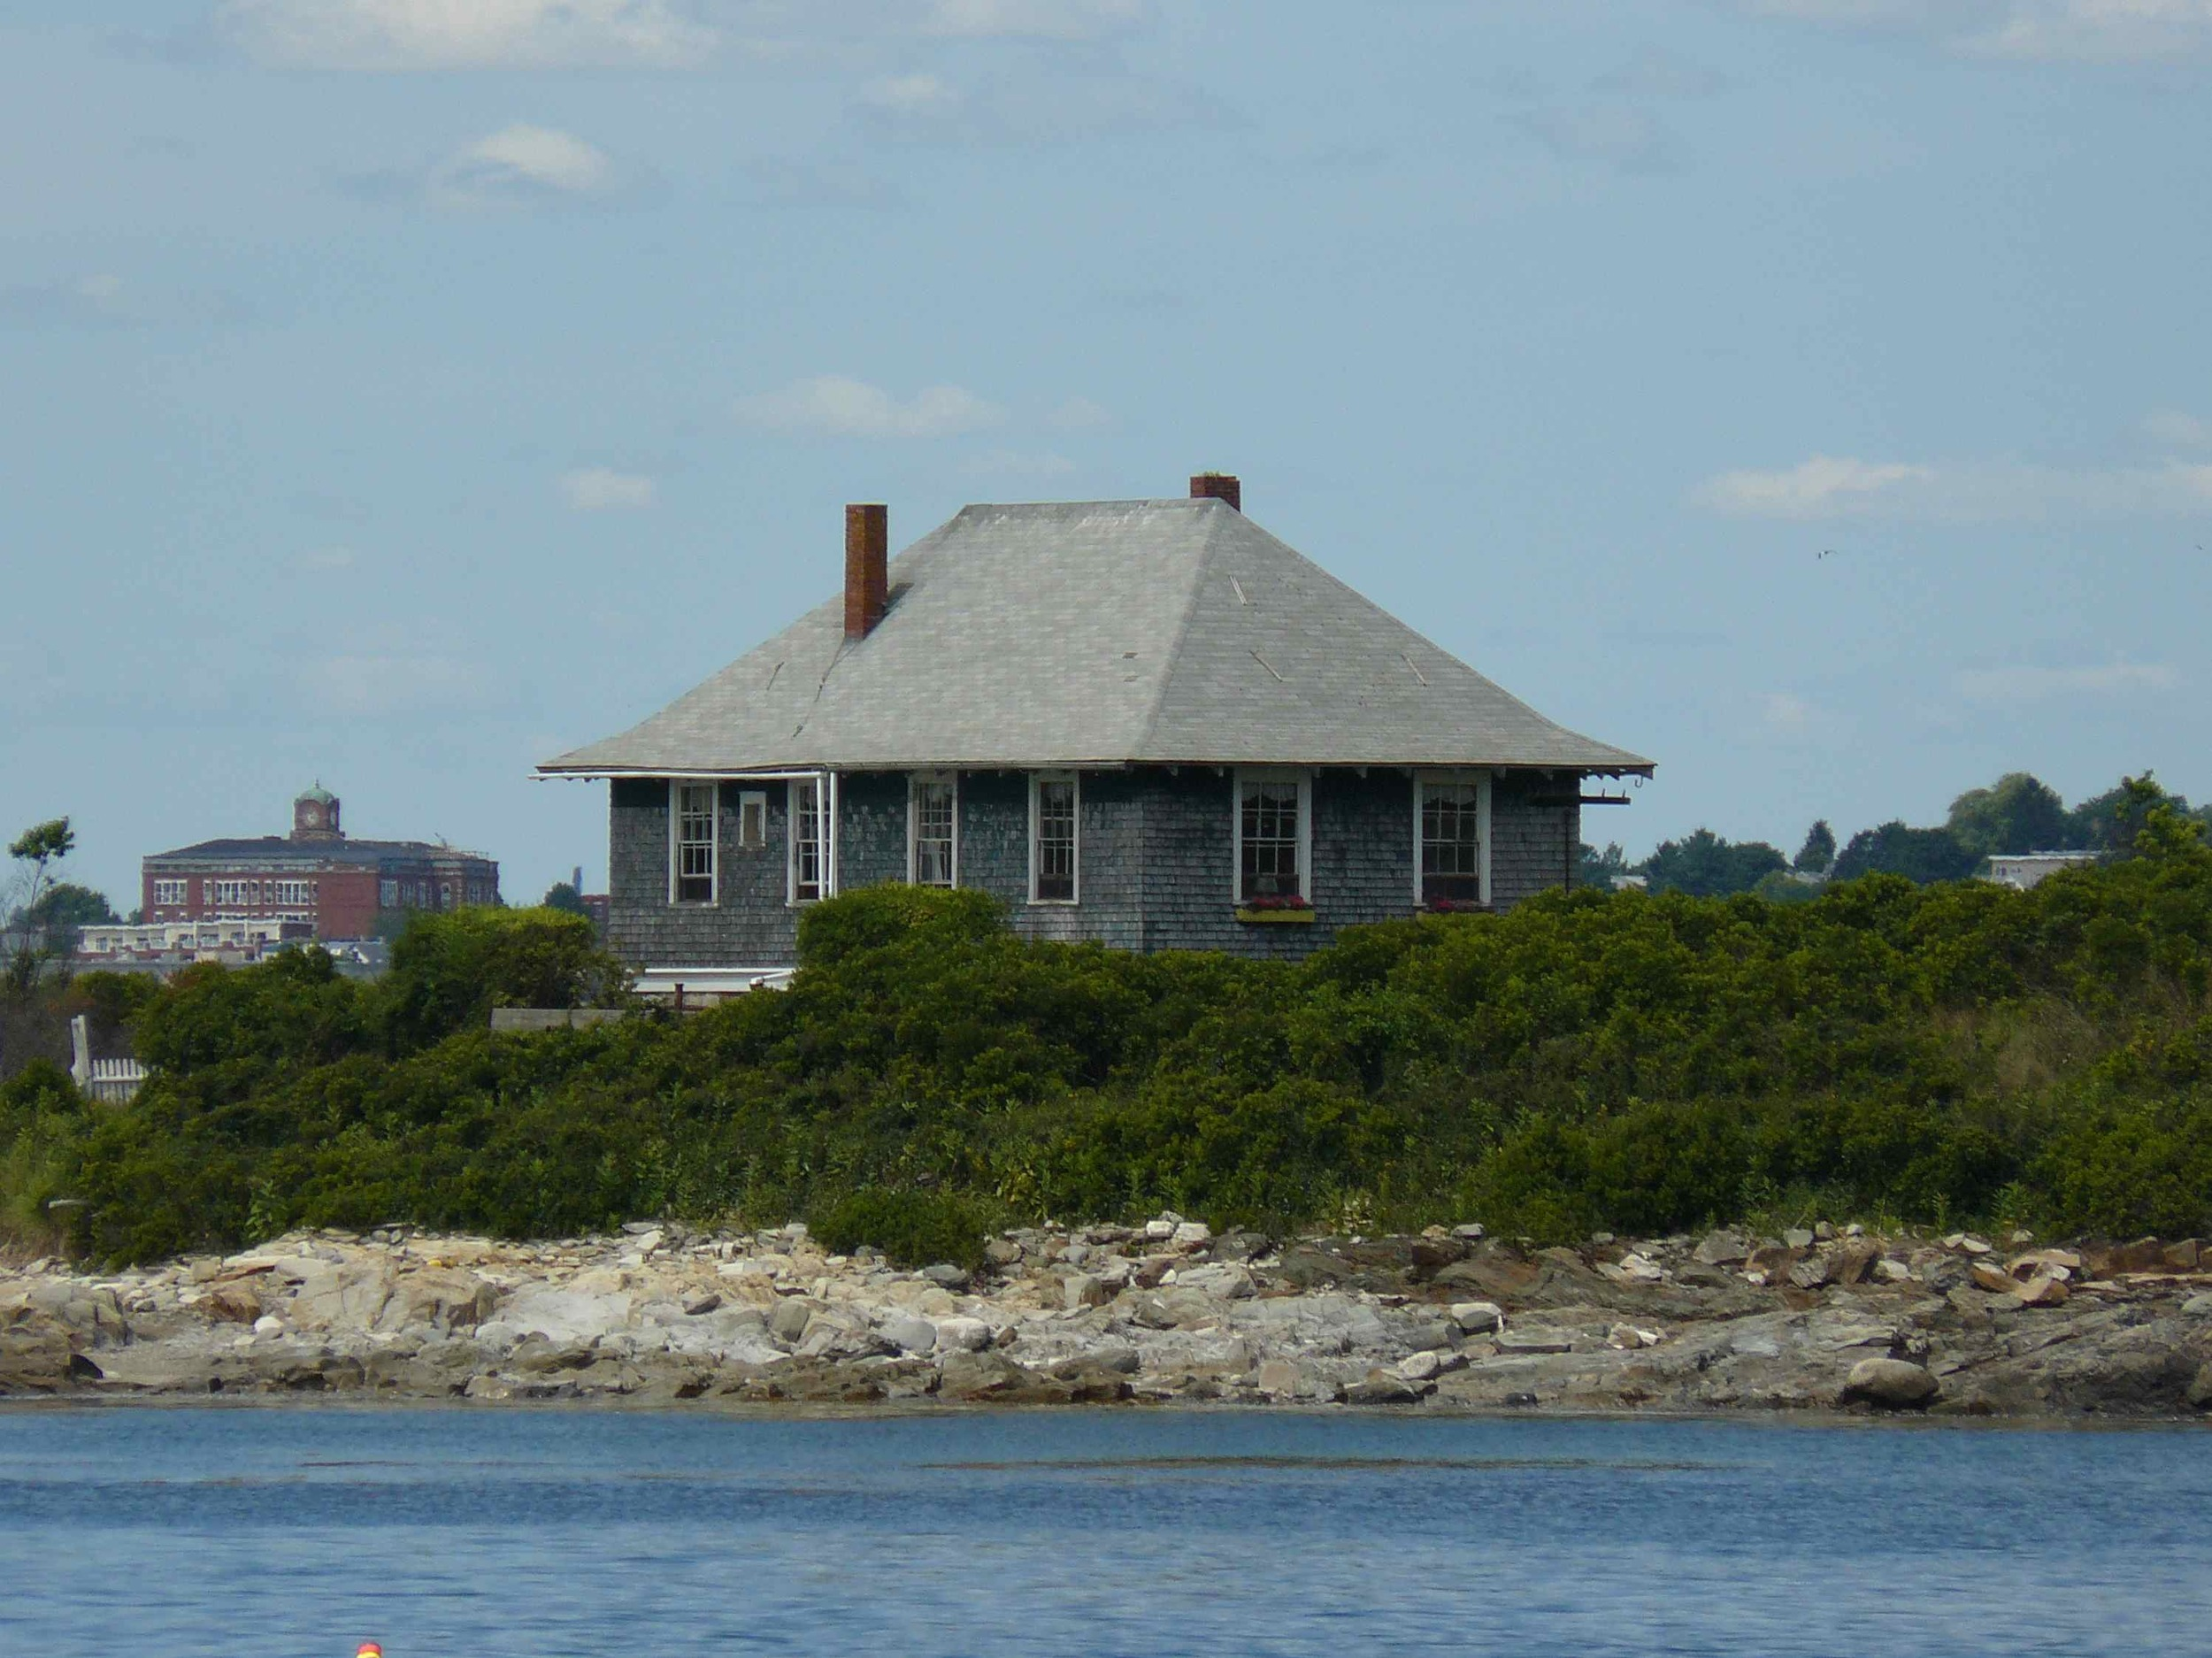 House_Island_July_2012_86_Quarantine_Station.JPG